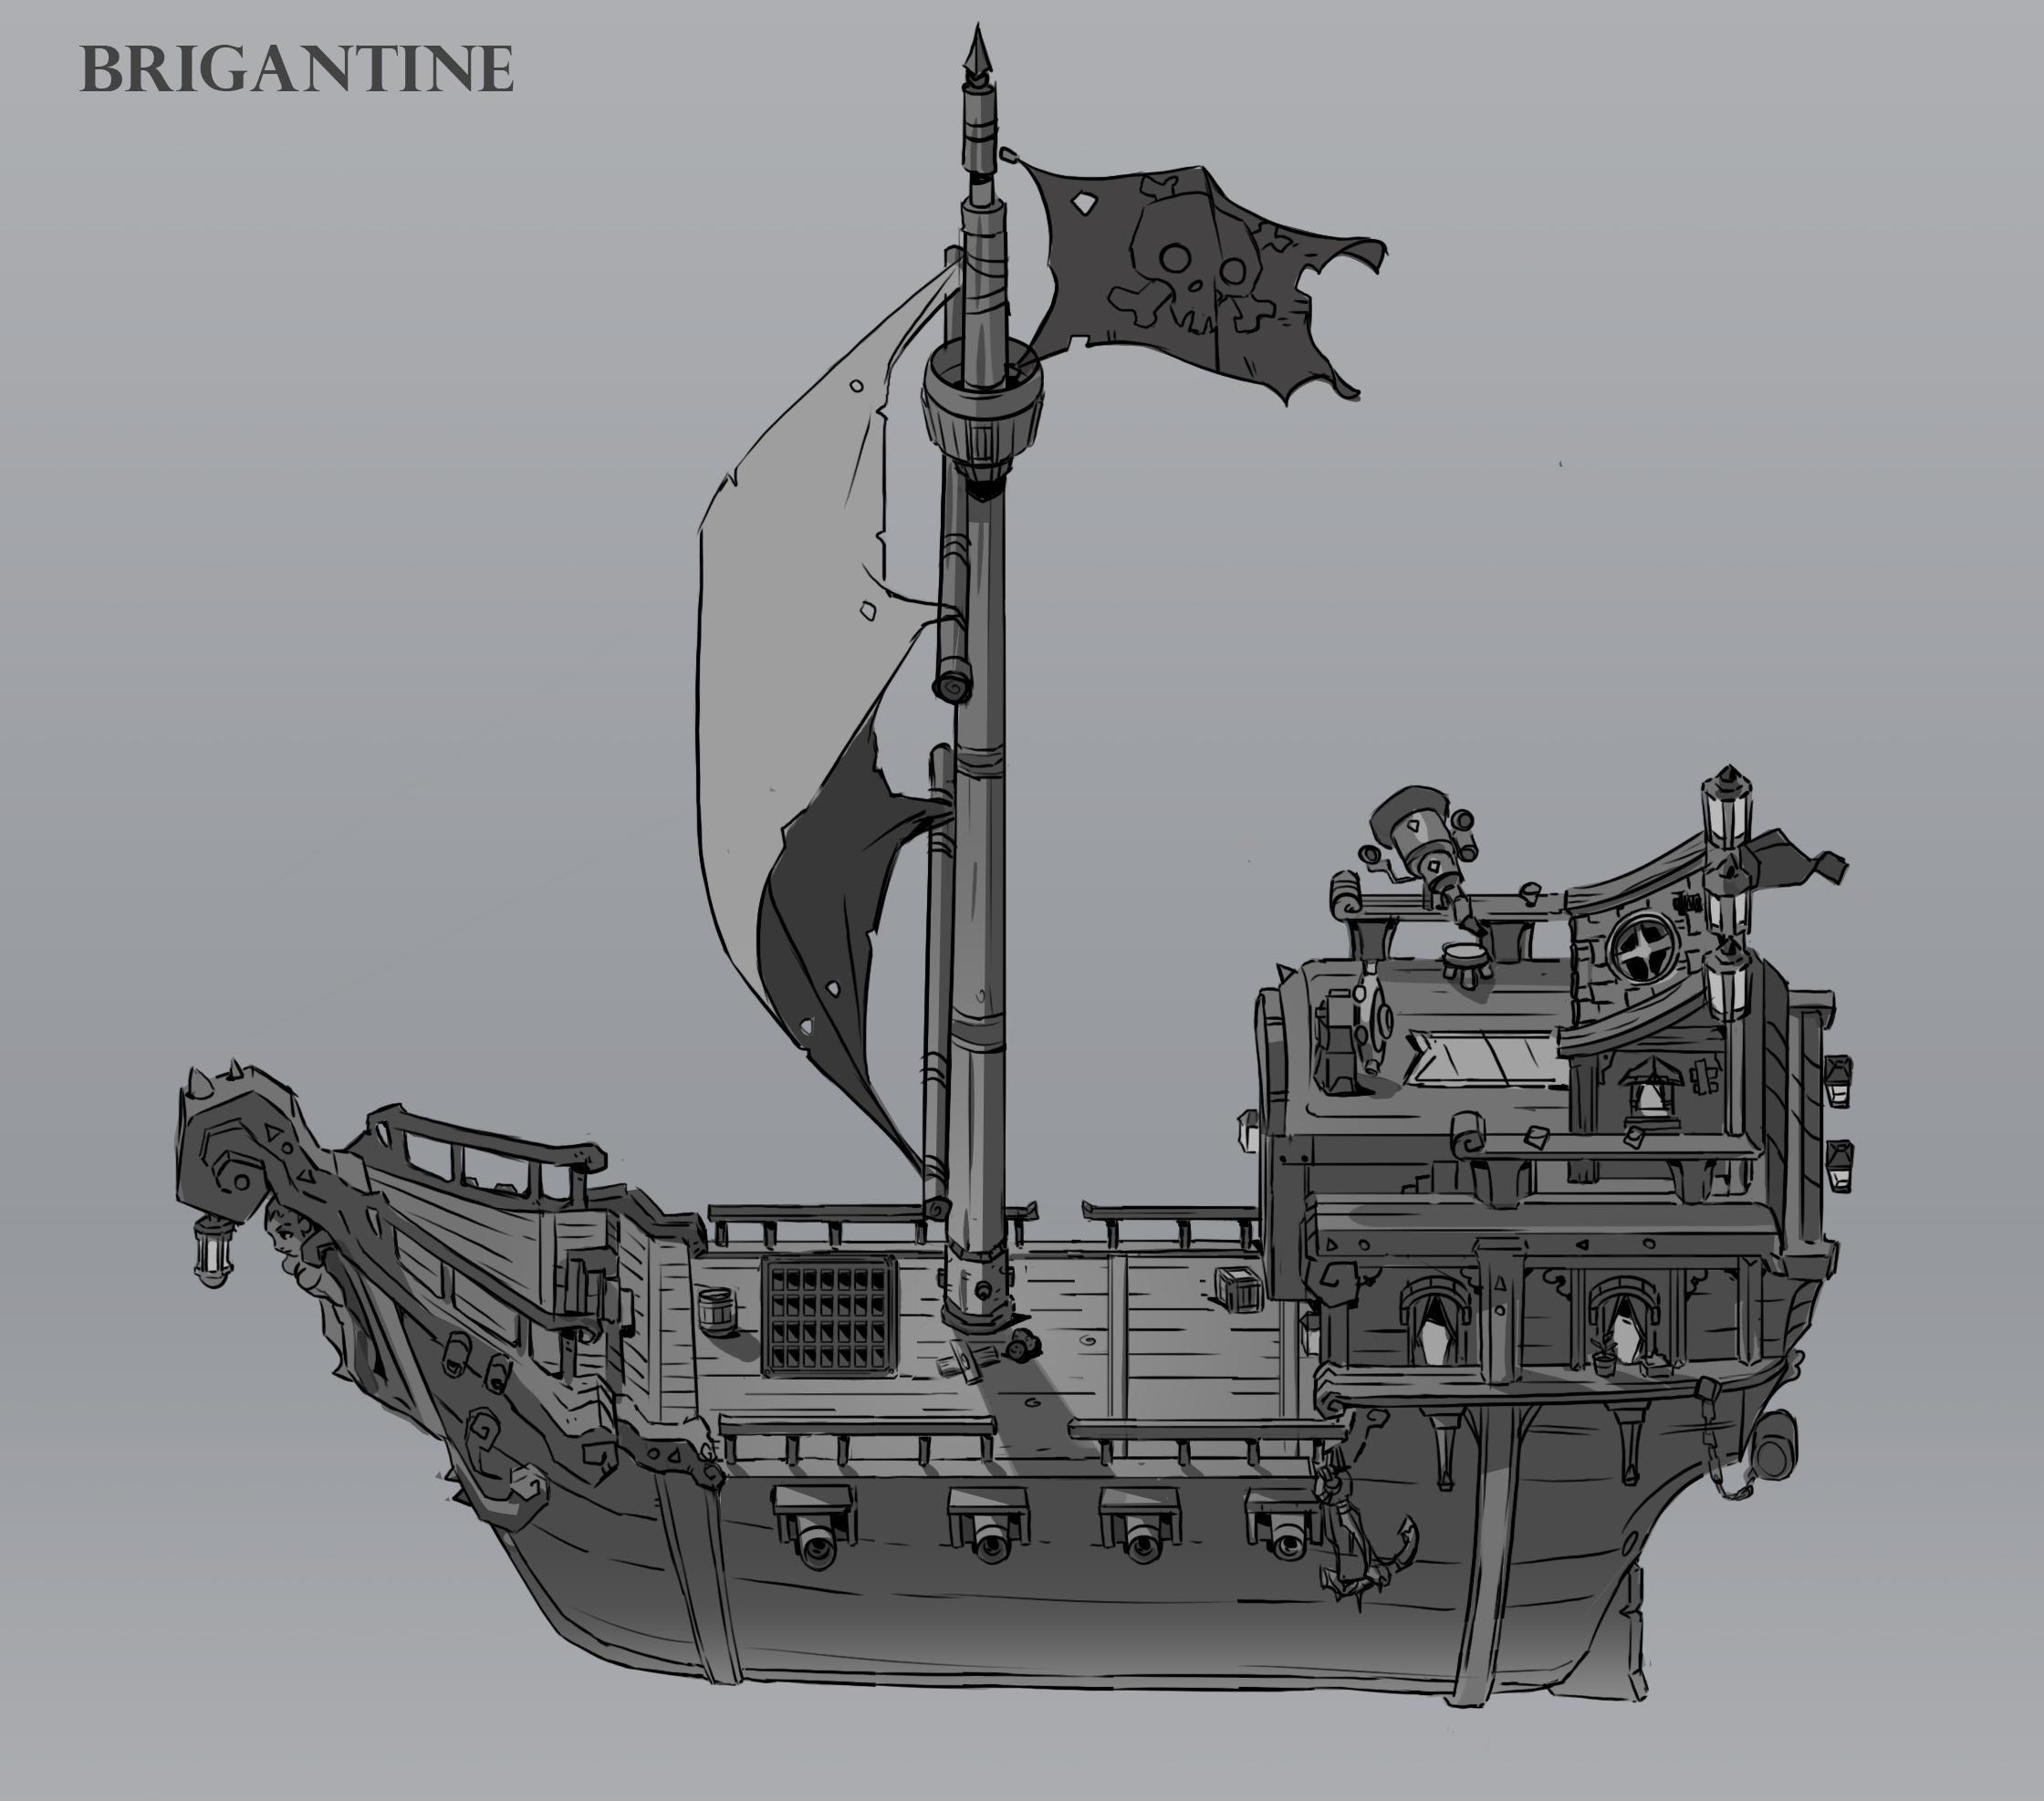 Pirate Ship Design